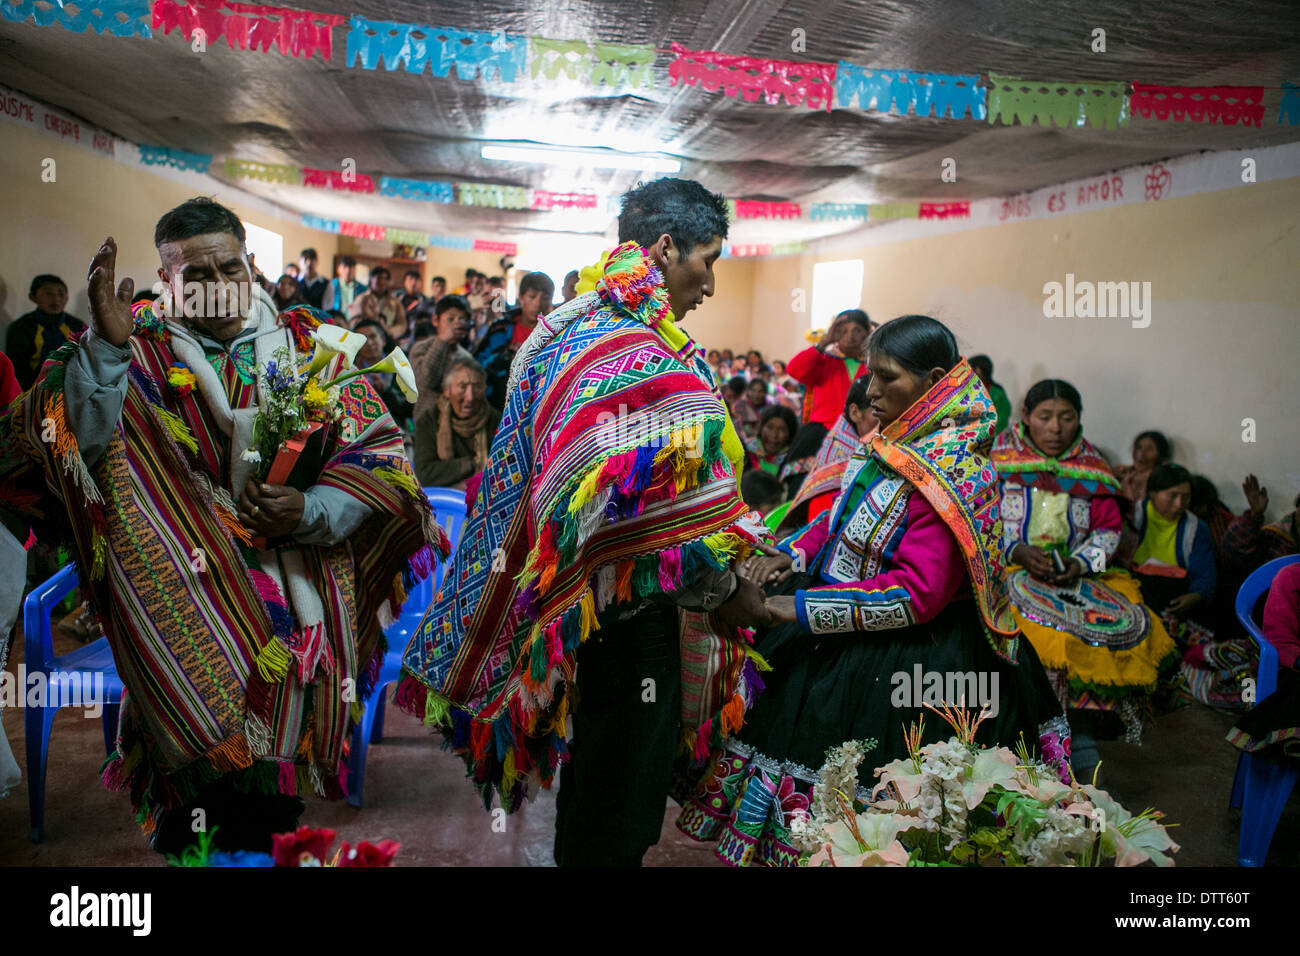 wedding in the andes among the quechua community called chillihuani - typical dresses and ponchos. - Stock Image